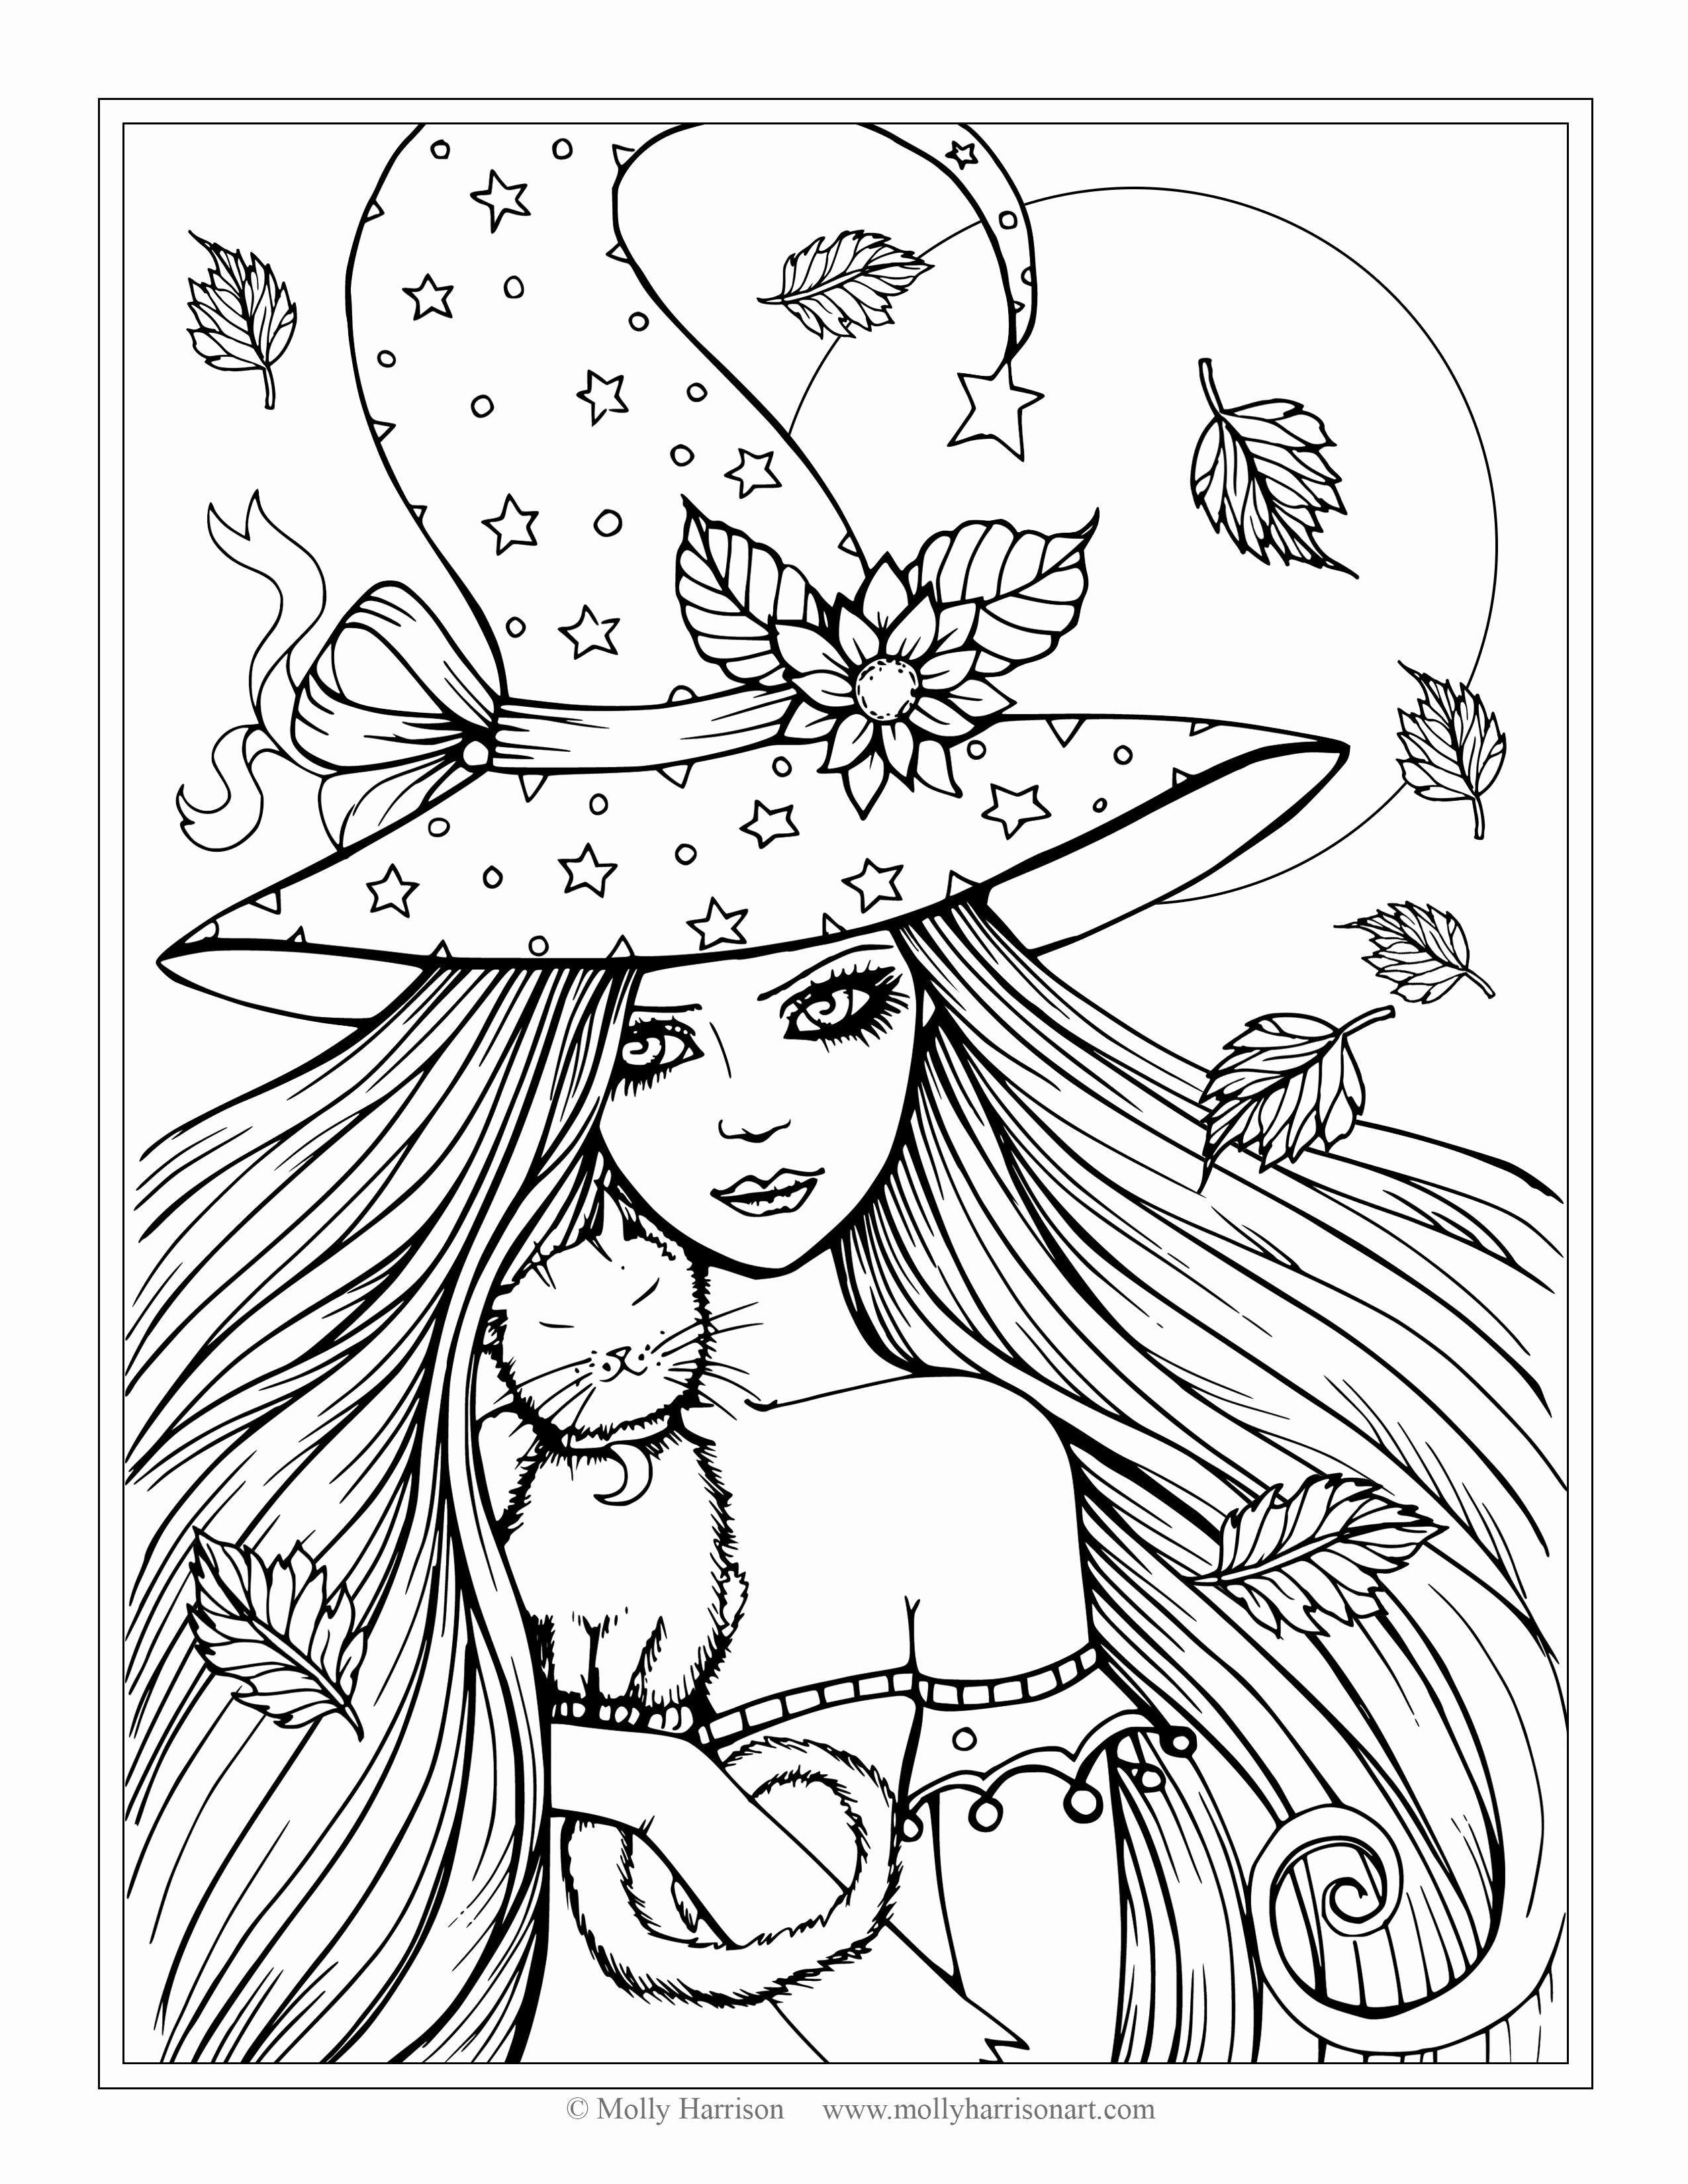 printable anime coloring pages Collection-Girl Coloring Pages for Kids Anime Girl Coloring Pages Printable Download 10-i